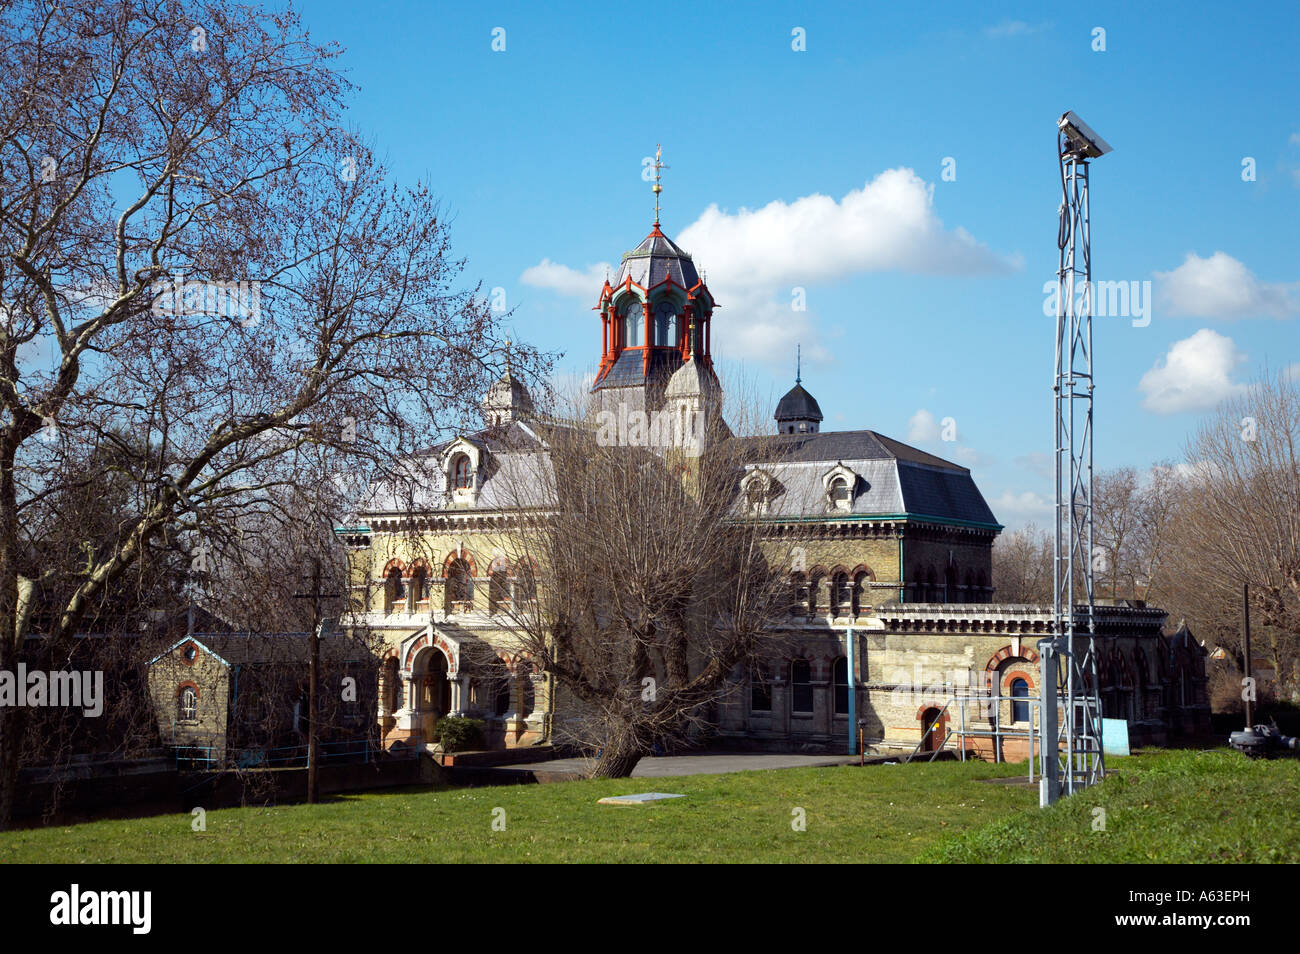 The disused Victorian Abbey Mills Sewage Pumping Station East London in spring - Stock Image